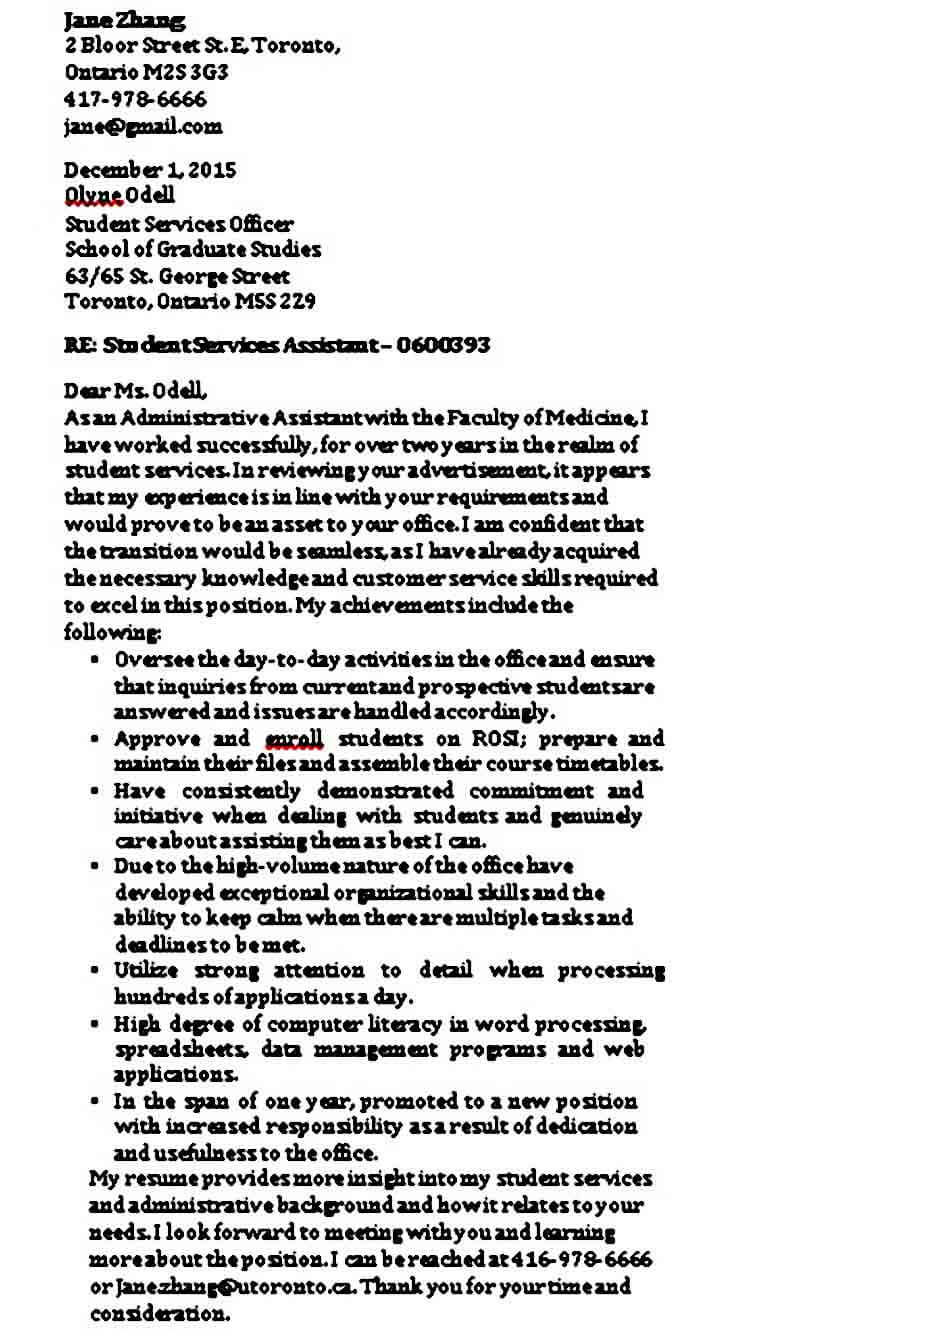 Medical Administrative Assistant Cover Letter from moussyusa.com